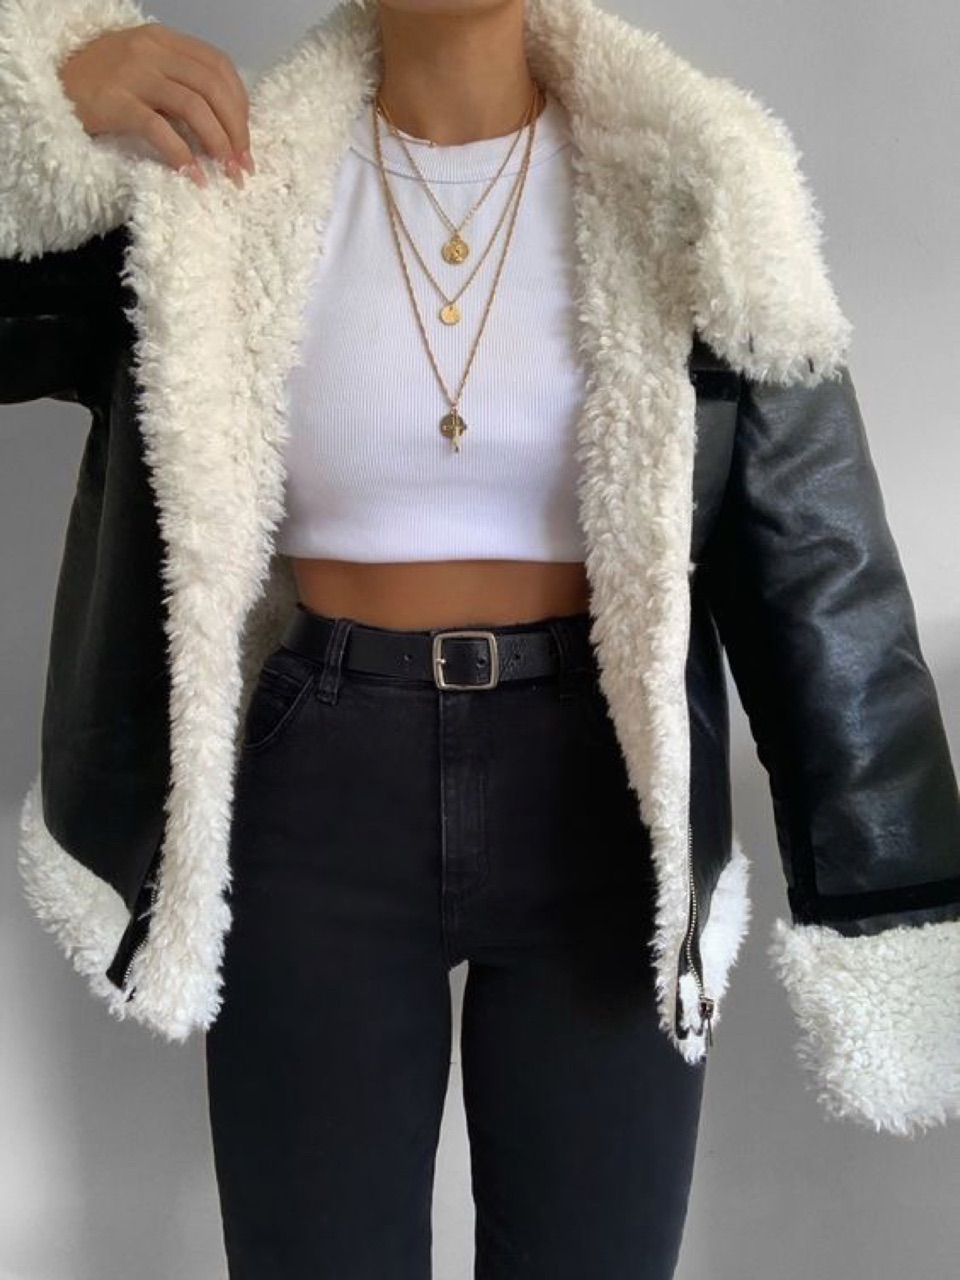 style, black, and outfit image